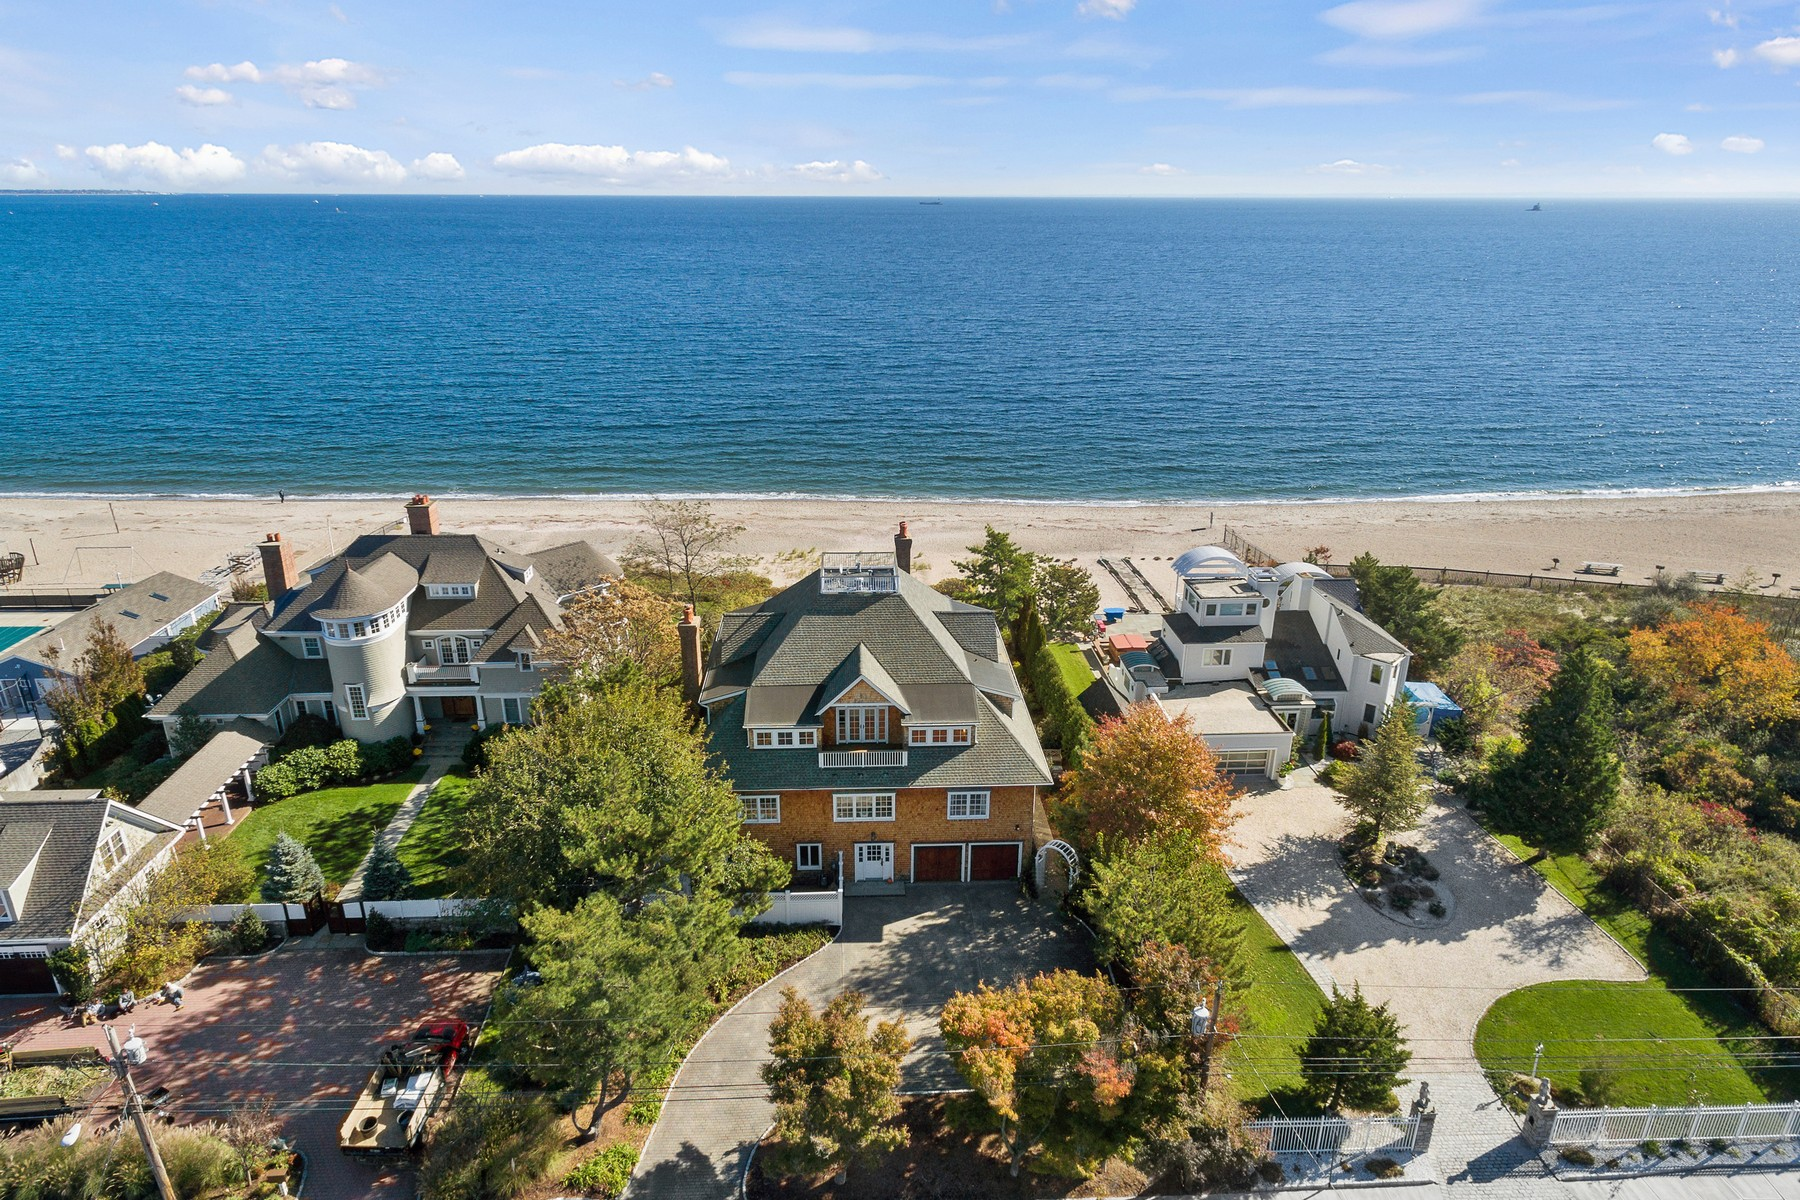 Single Family Home for Sale at The Ultimate Beach House 195 Fairfield Beach Road Fairfield, Connecticut, 06824 United States